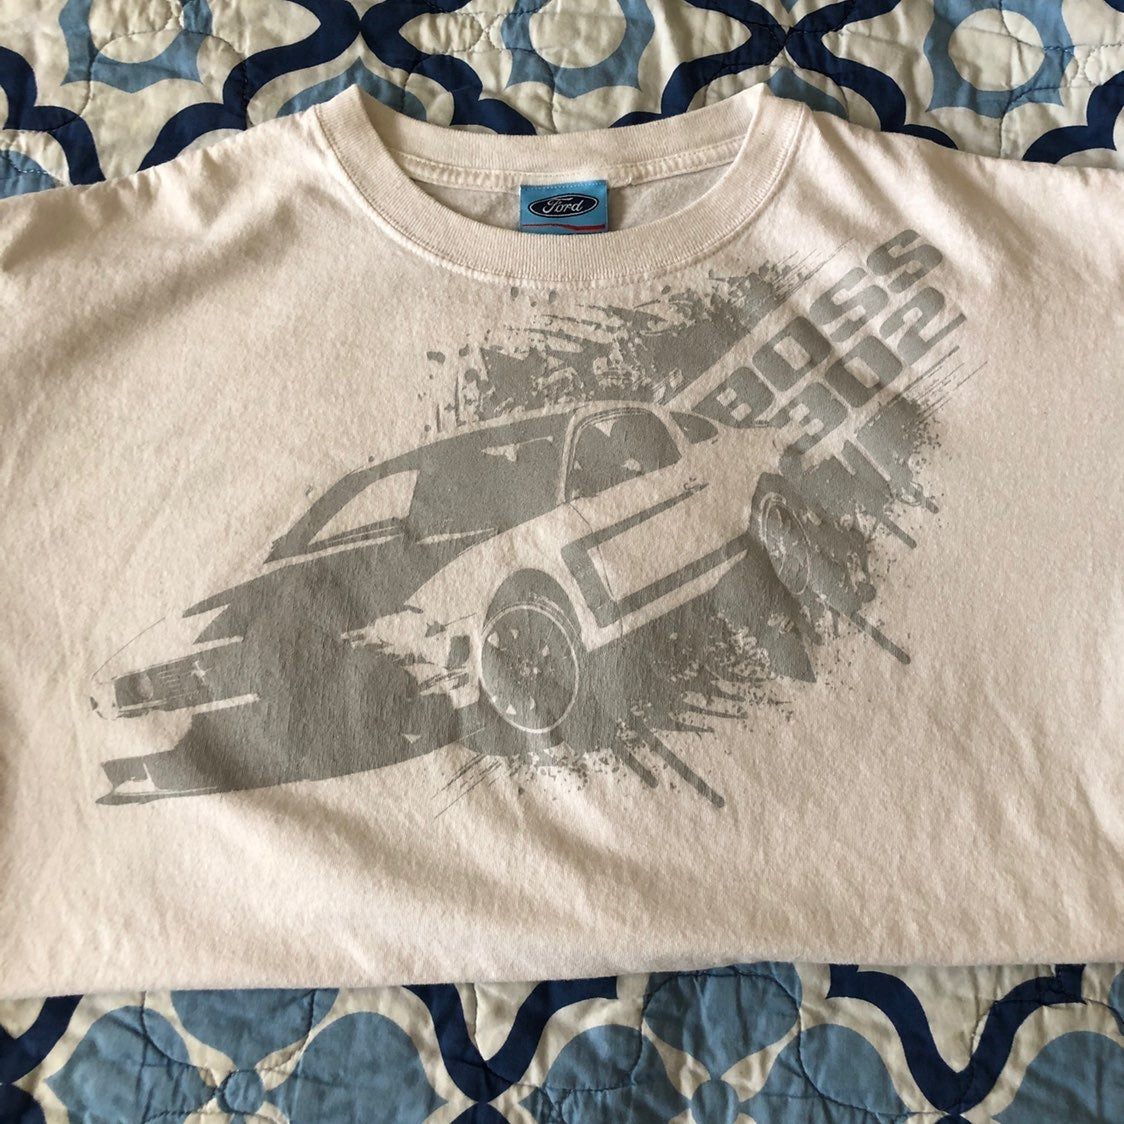 Ford BOSS Mustang Tee